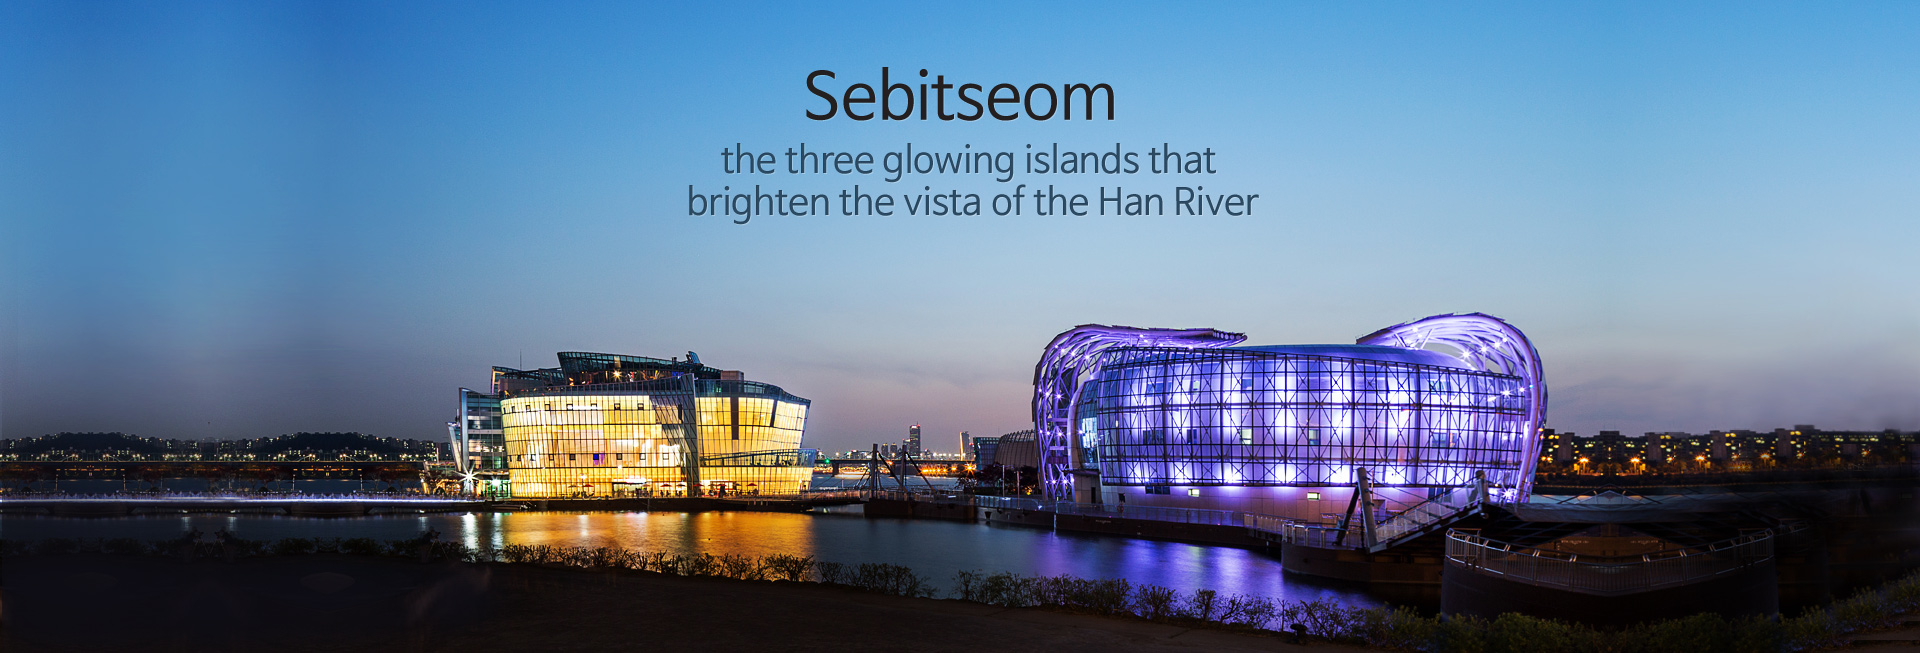 some sevit the three glowing islands that brighten the vista of the Han River